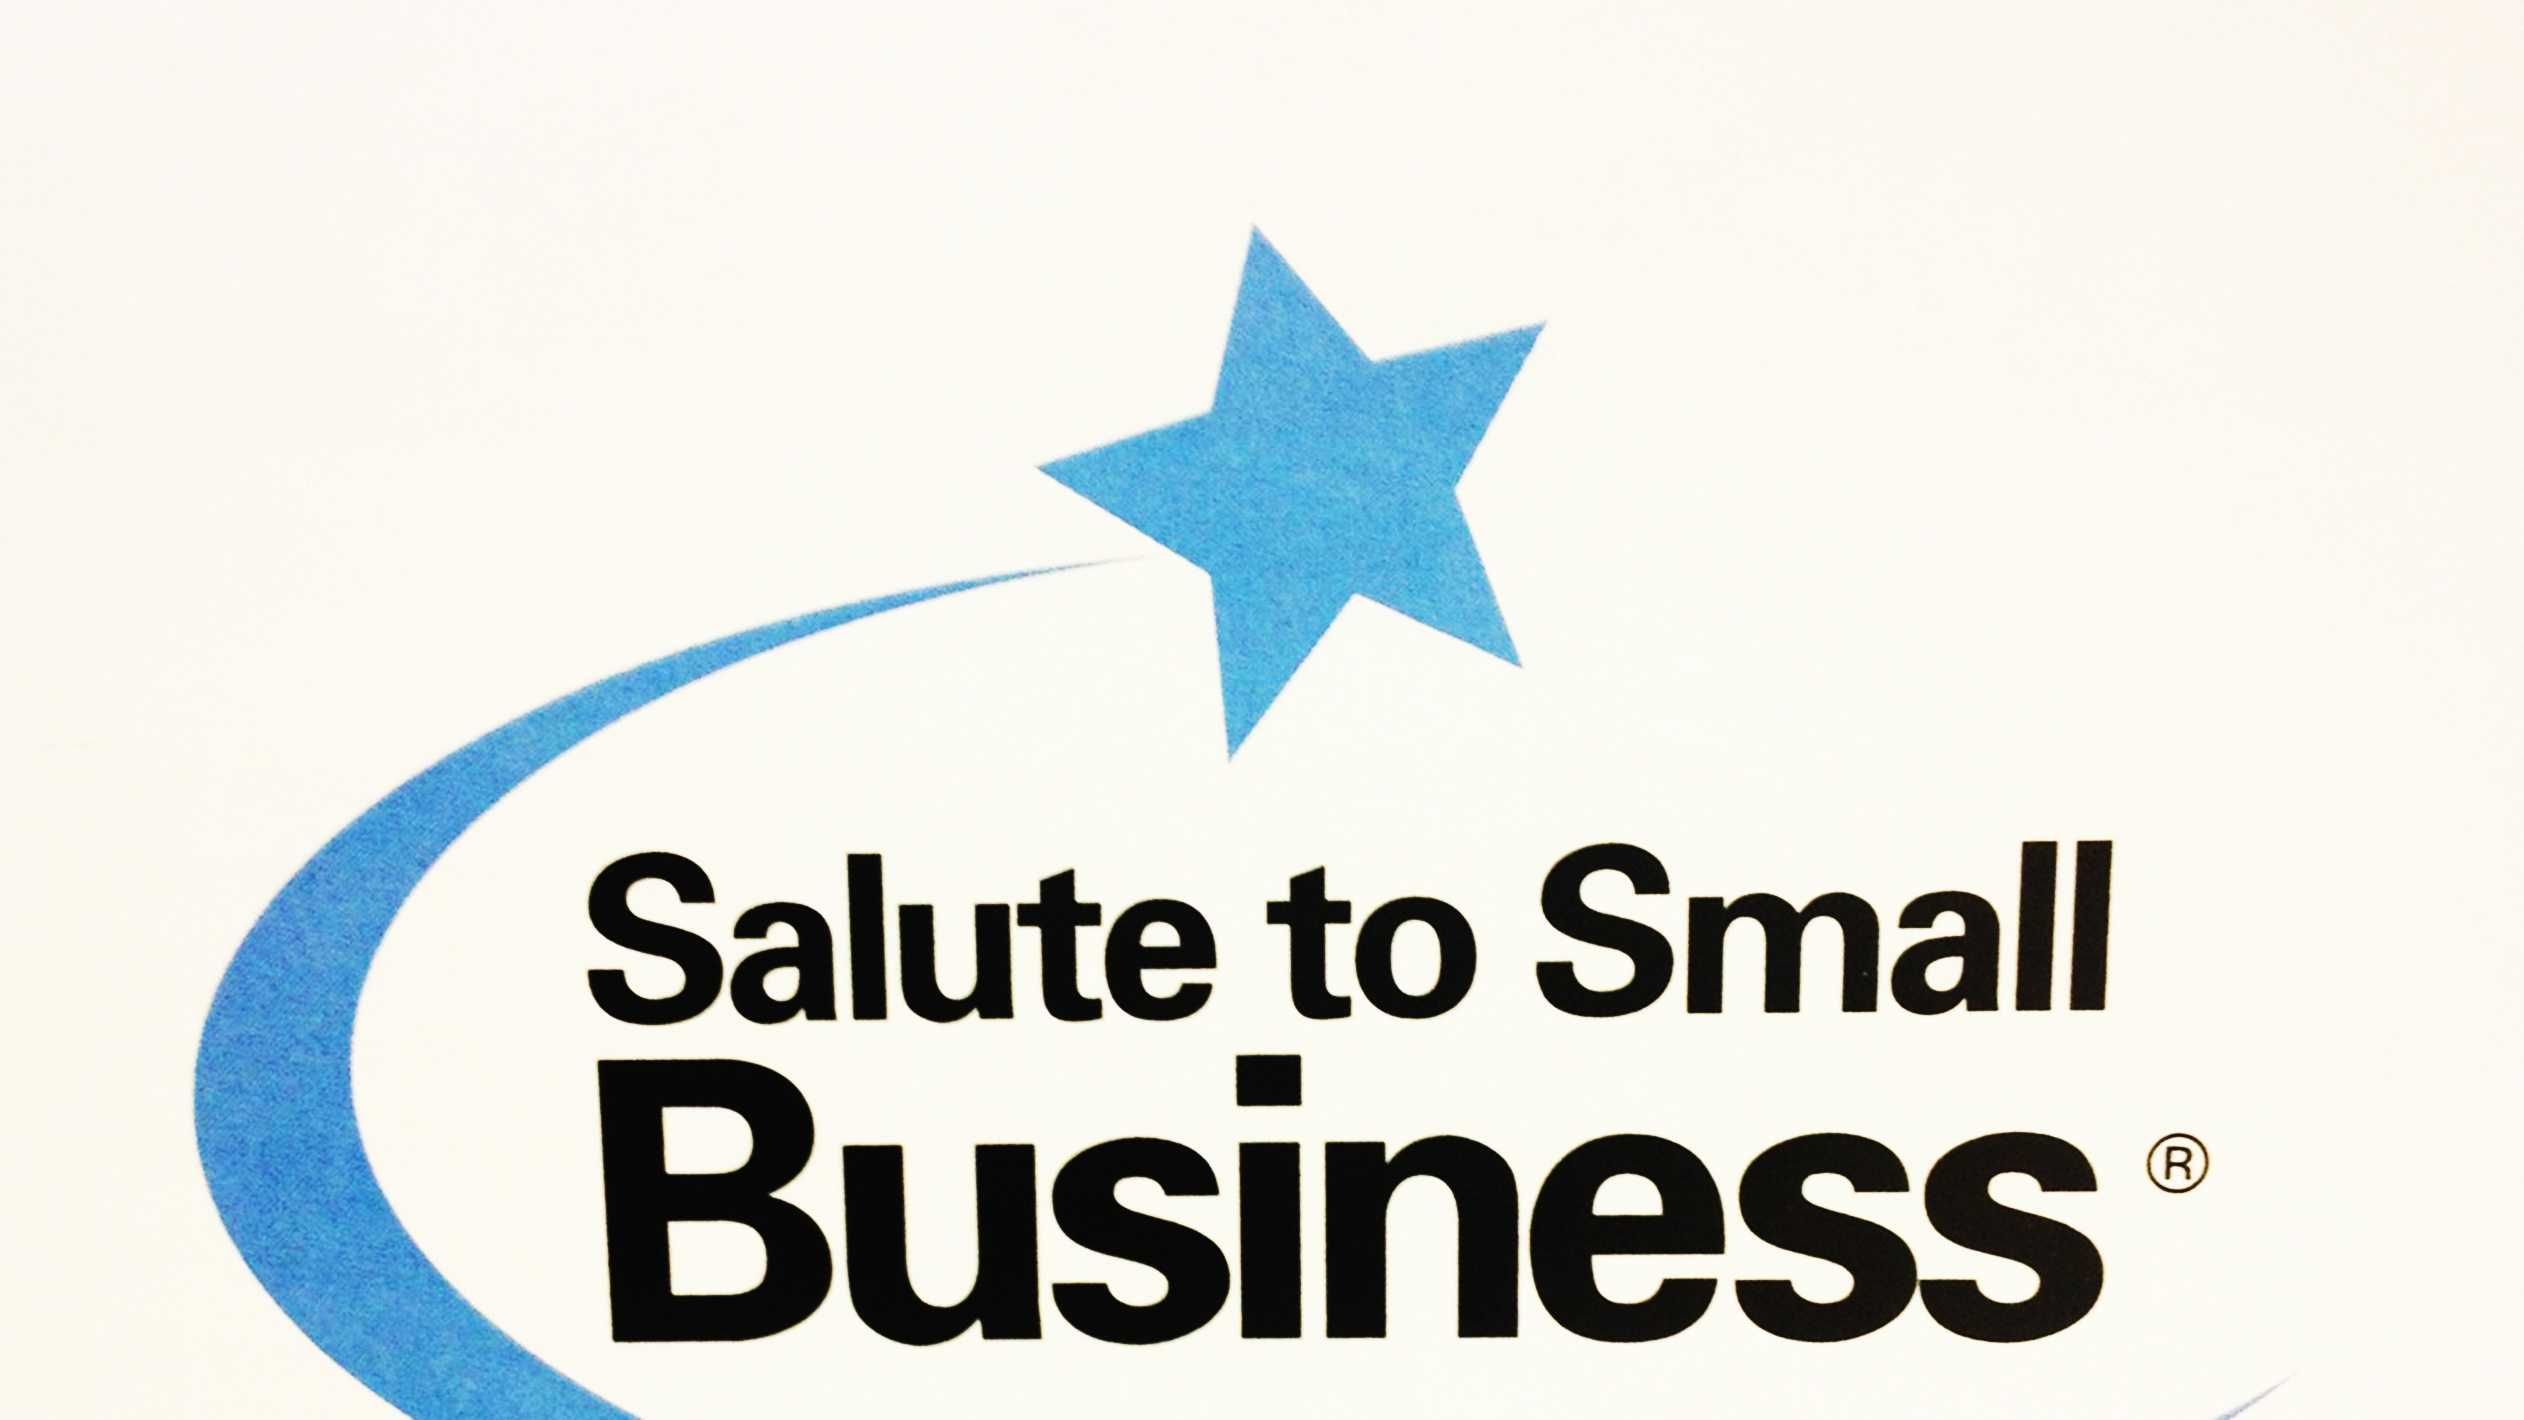 Salute to Small Business